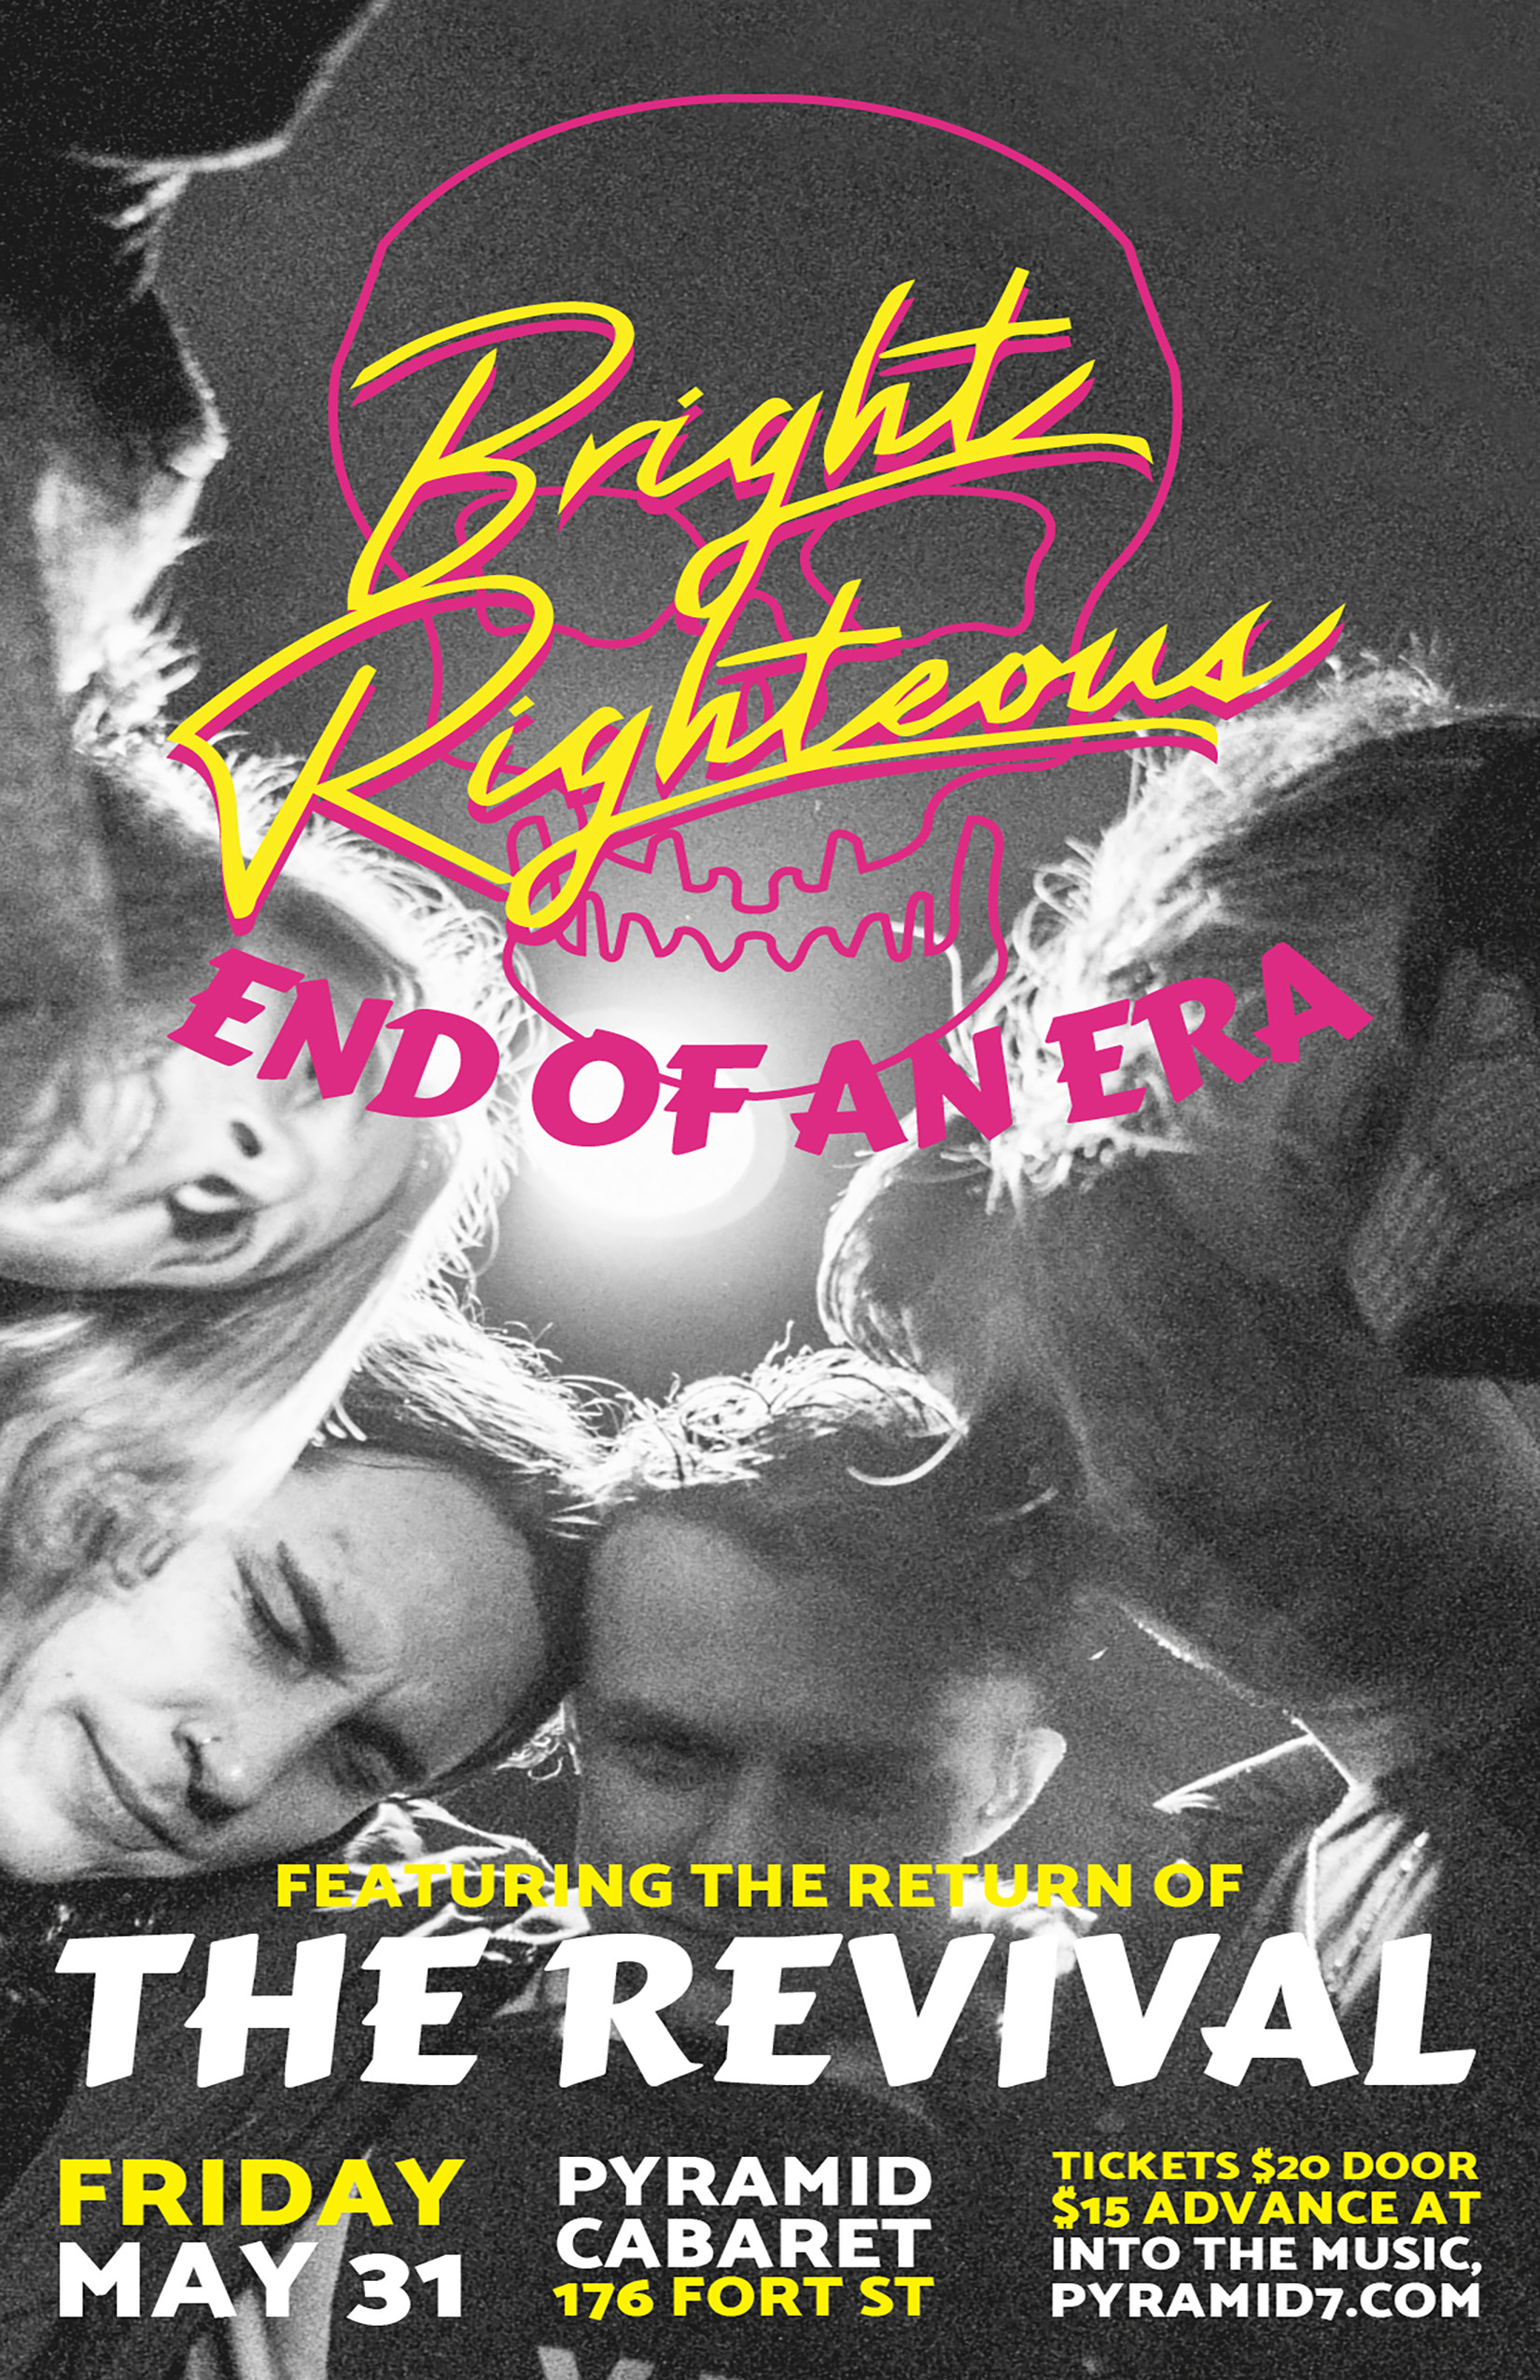 BRIGHT RIGHTEOUS / THE REVIVAL -MAY 31 - The PYRAMID 00202